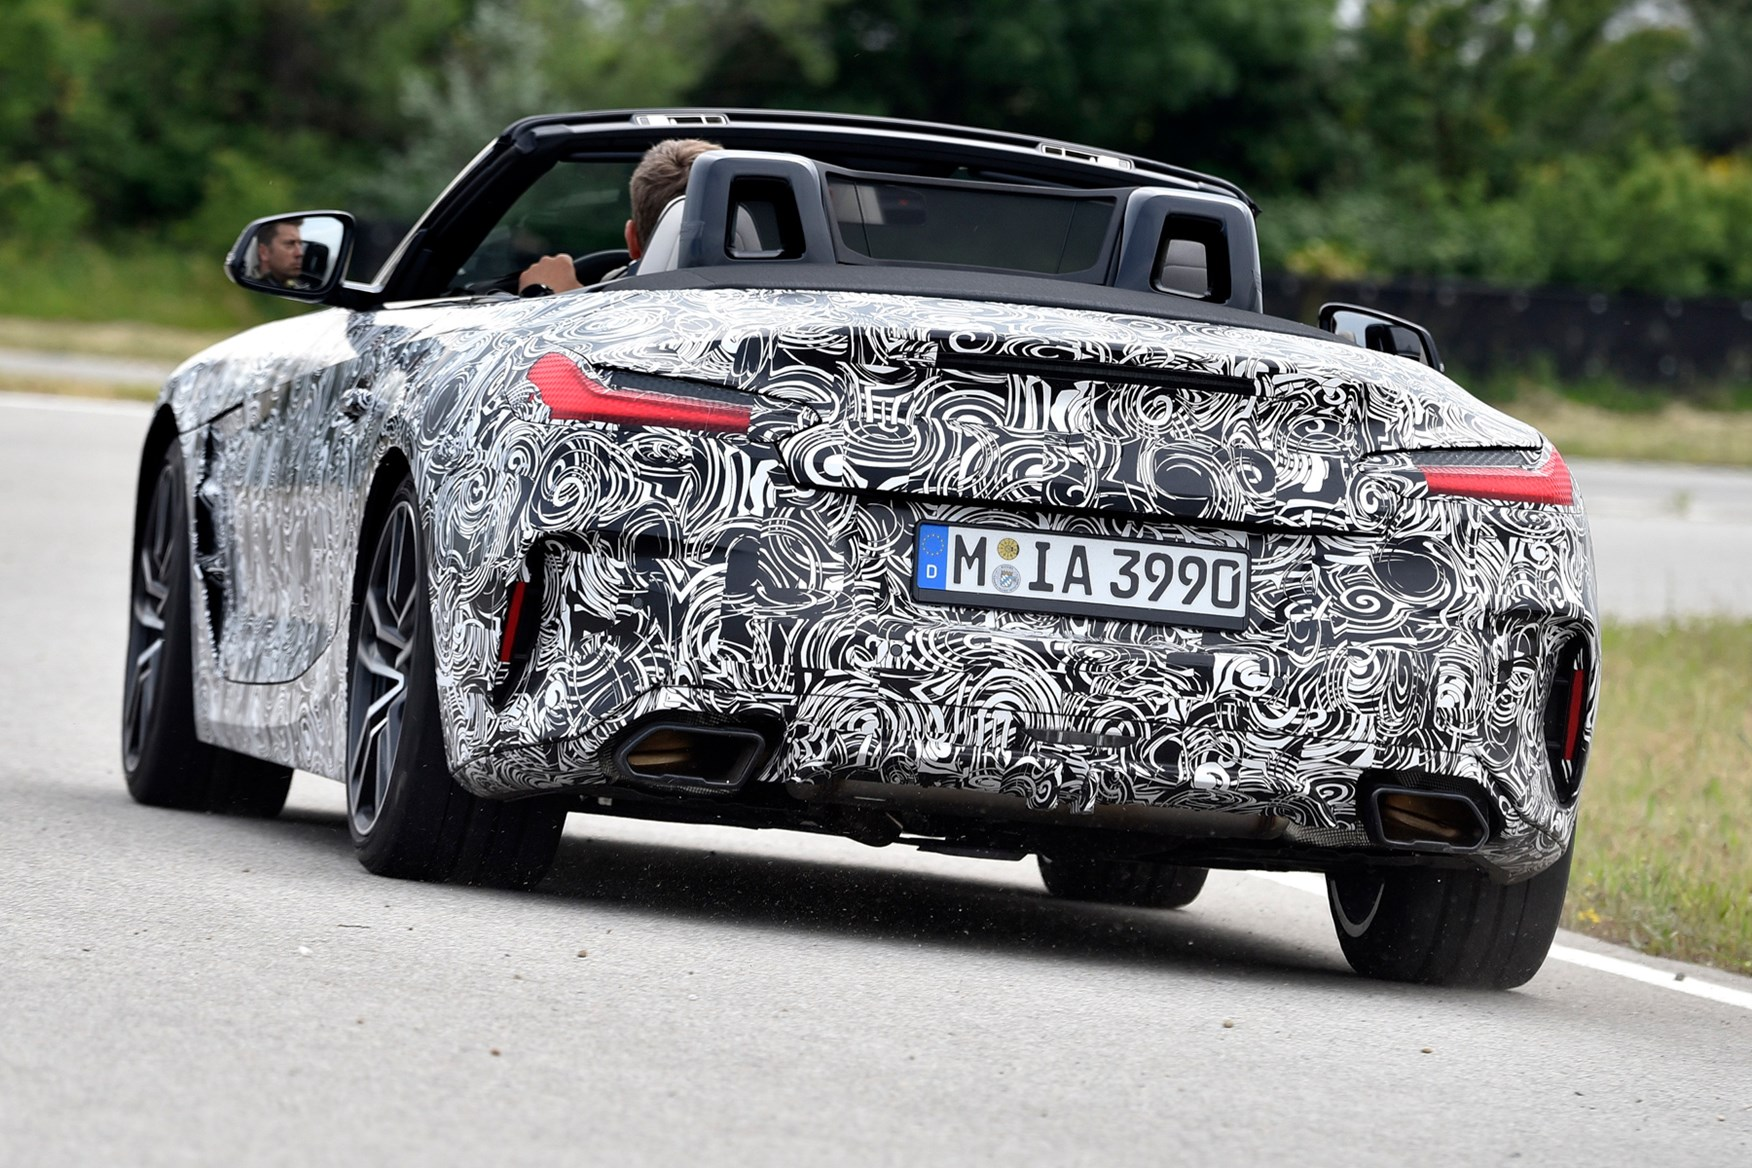 The 2019 BMW Z4 Roadster is brilliant fun to drive